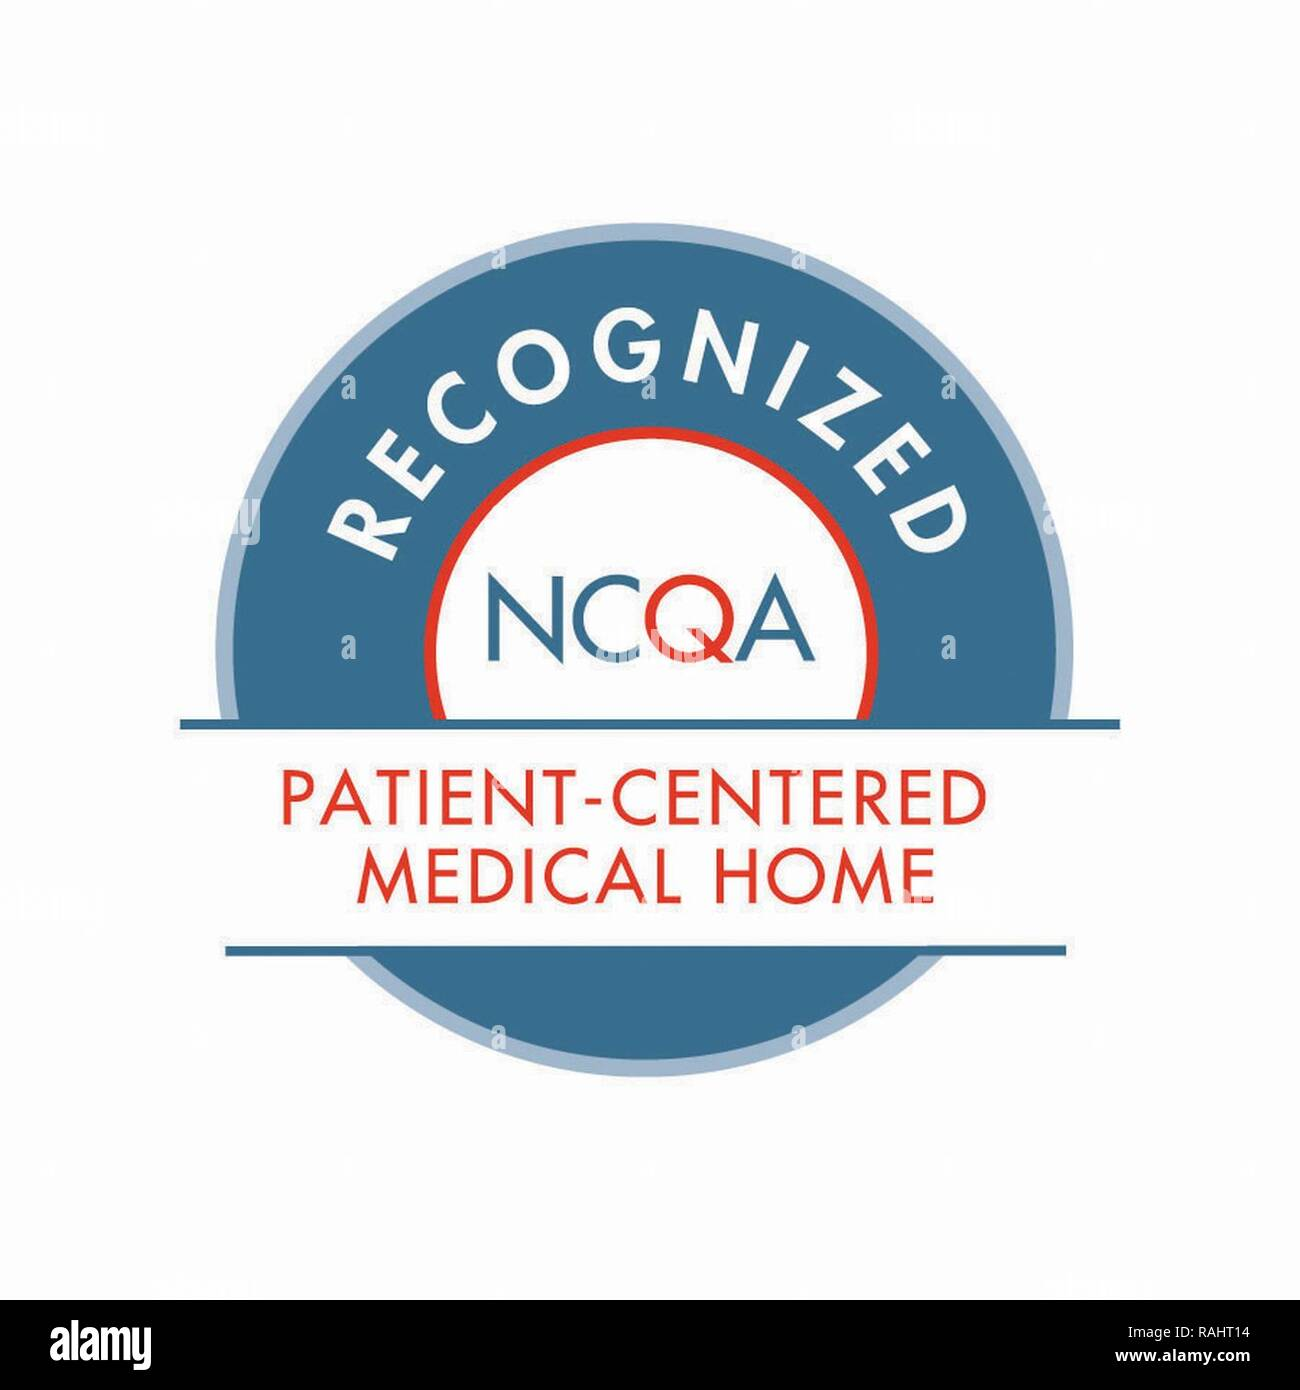 Naval Hospital Jacksonville (family medicine, internal medicine, pediatrics) and Naval Branch Health Clinic Jacksonville (primary care) earned Patient-Centered Medical Home Recognition from the National Committee for Quality Assurance. - Stock Image